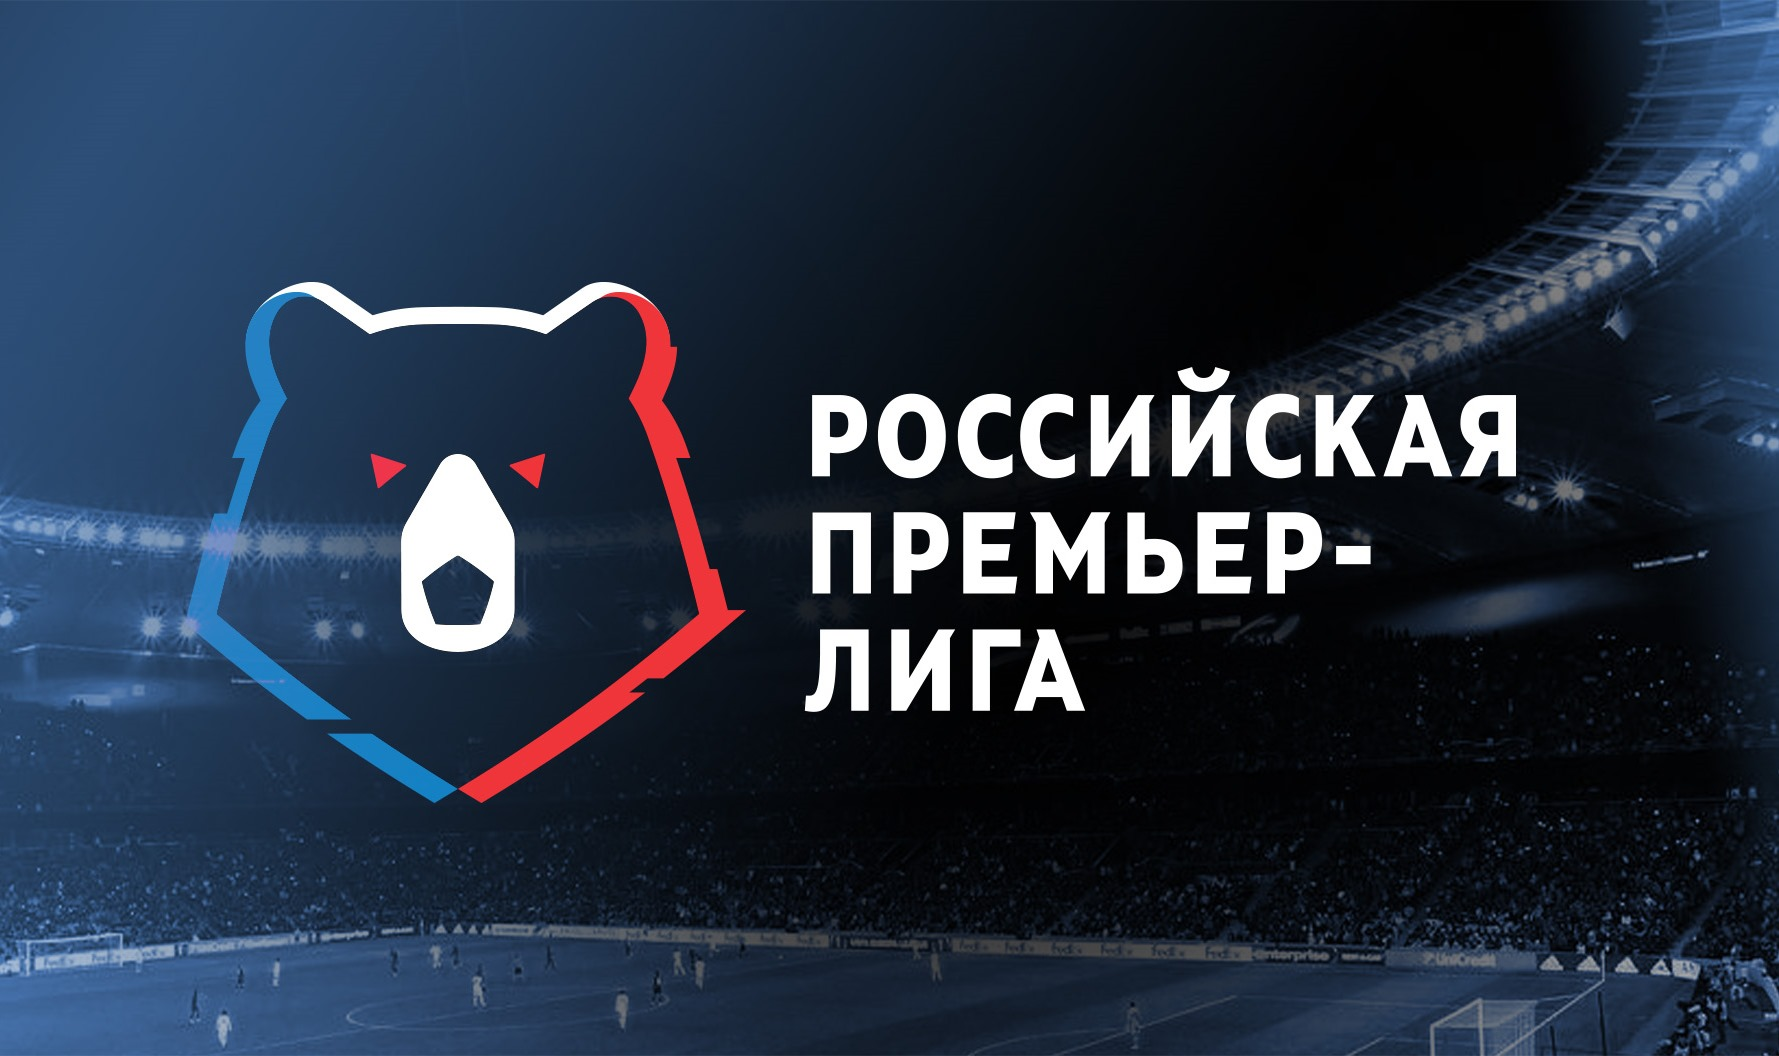 Russian Premier League Tickets